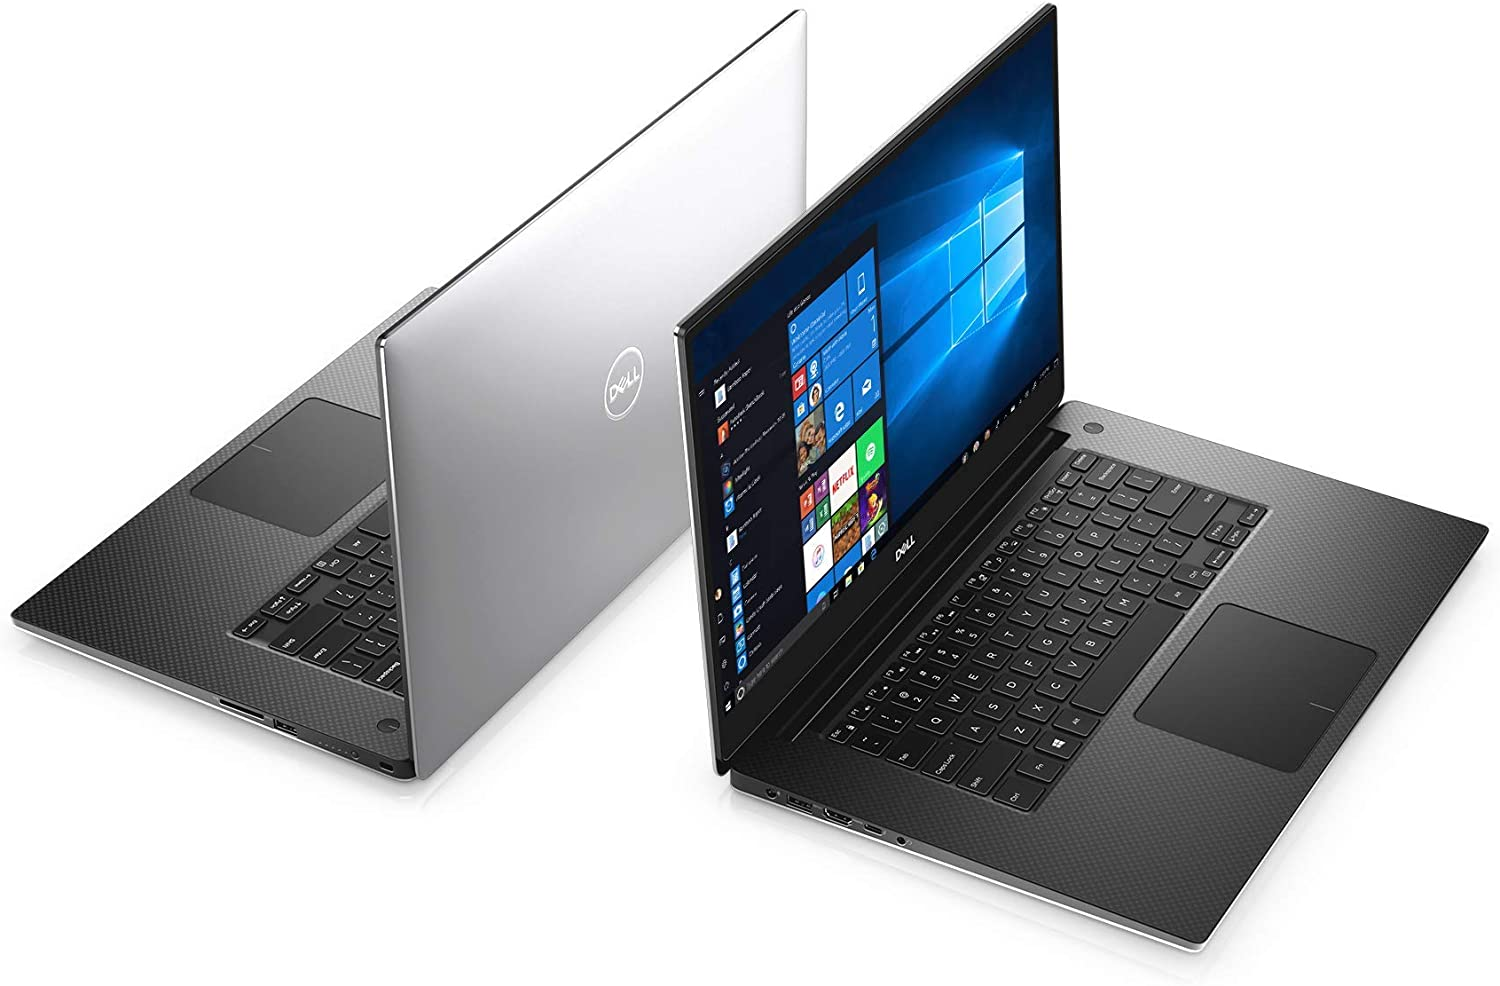 Dell XPS 15 7590 XPS7590-7541SLV i7-9750H 8GB DDR4-2666MHz,512SSD, NVIDIA GeForce GTX 1650 4GB GDDR5, 15.6 FHD (1920 X 1080) InfinityEdge IPS Non Touch (Renewed)